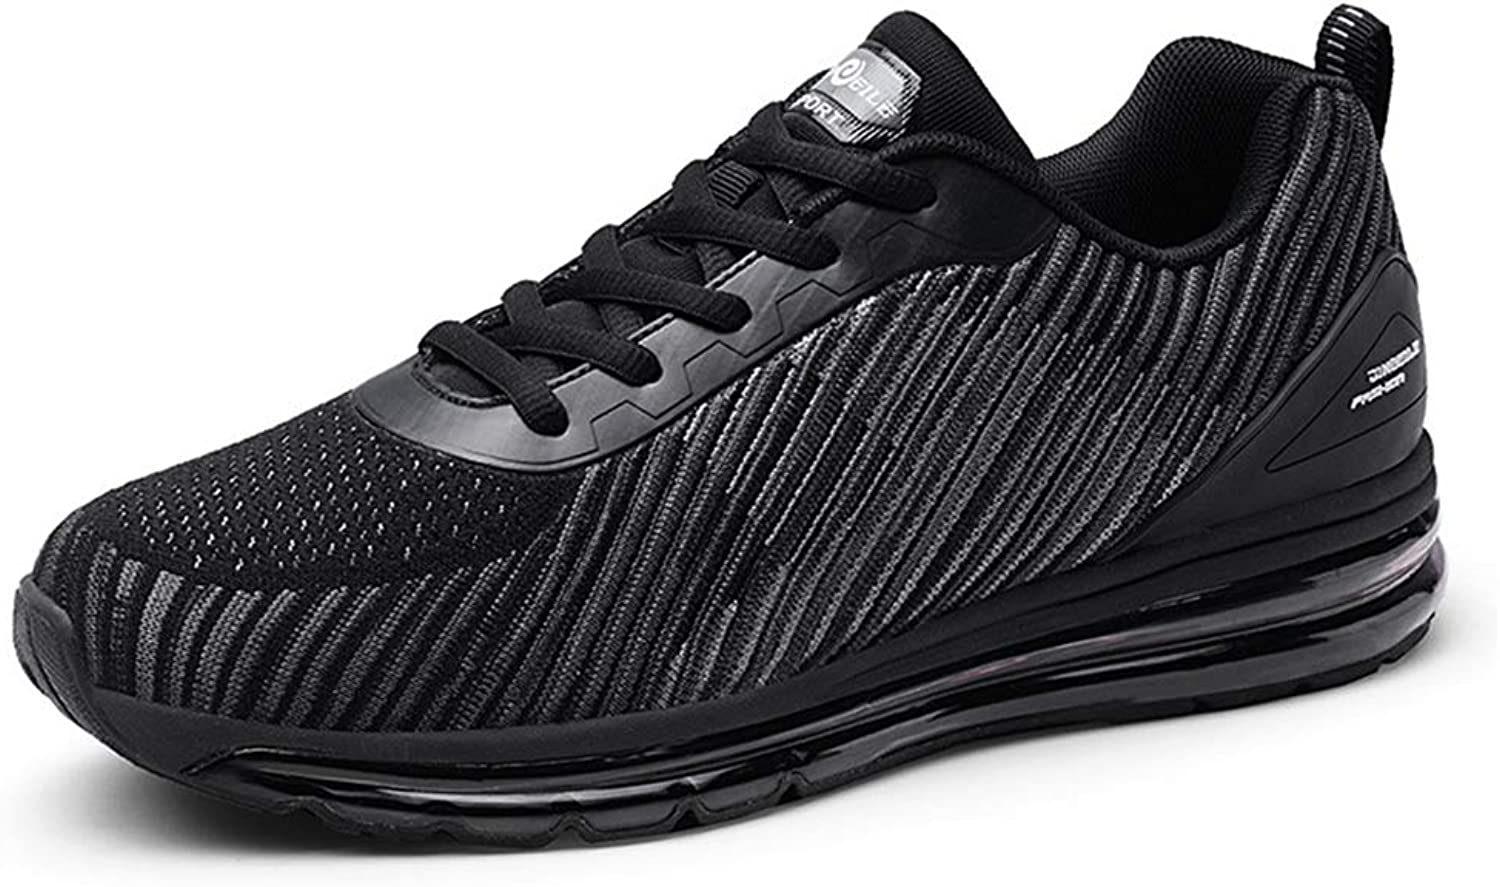 Men's shoes Knitting Low-Top Sneakers Full Palm Air Cushion Trail Running shoes Casual Daily Walking shoes Fall & Winter New,Black,39